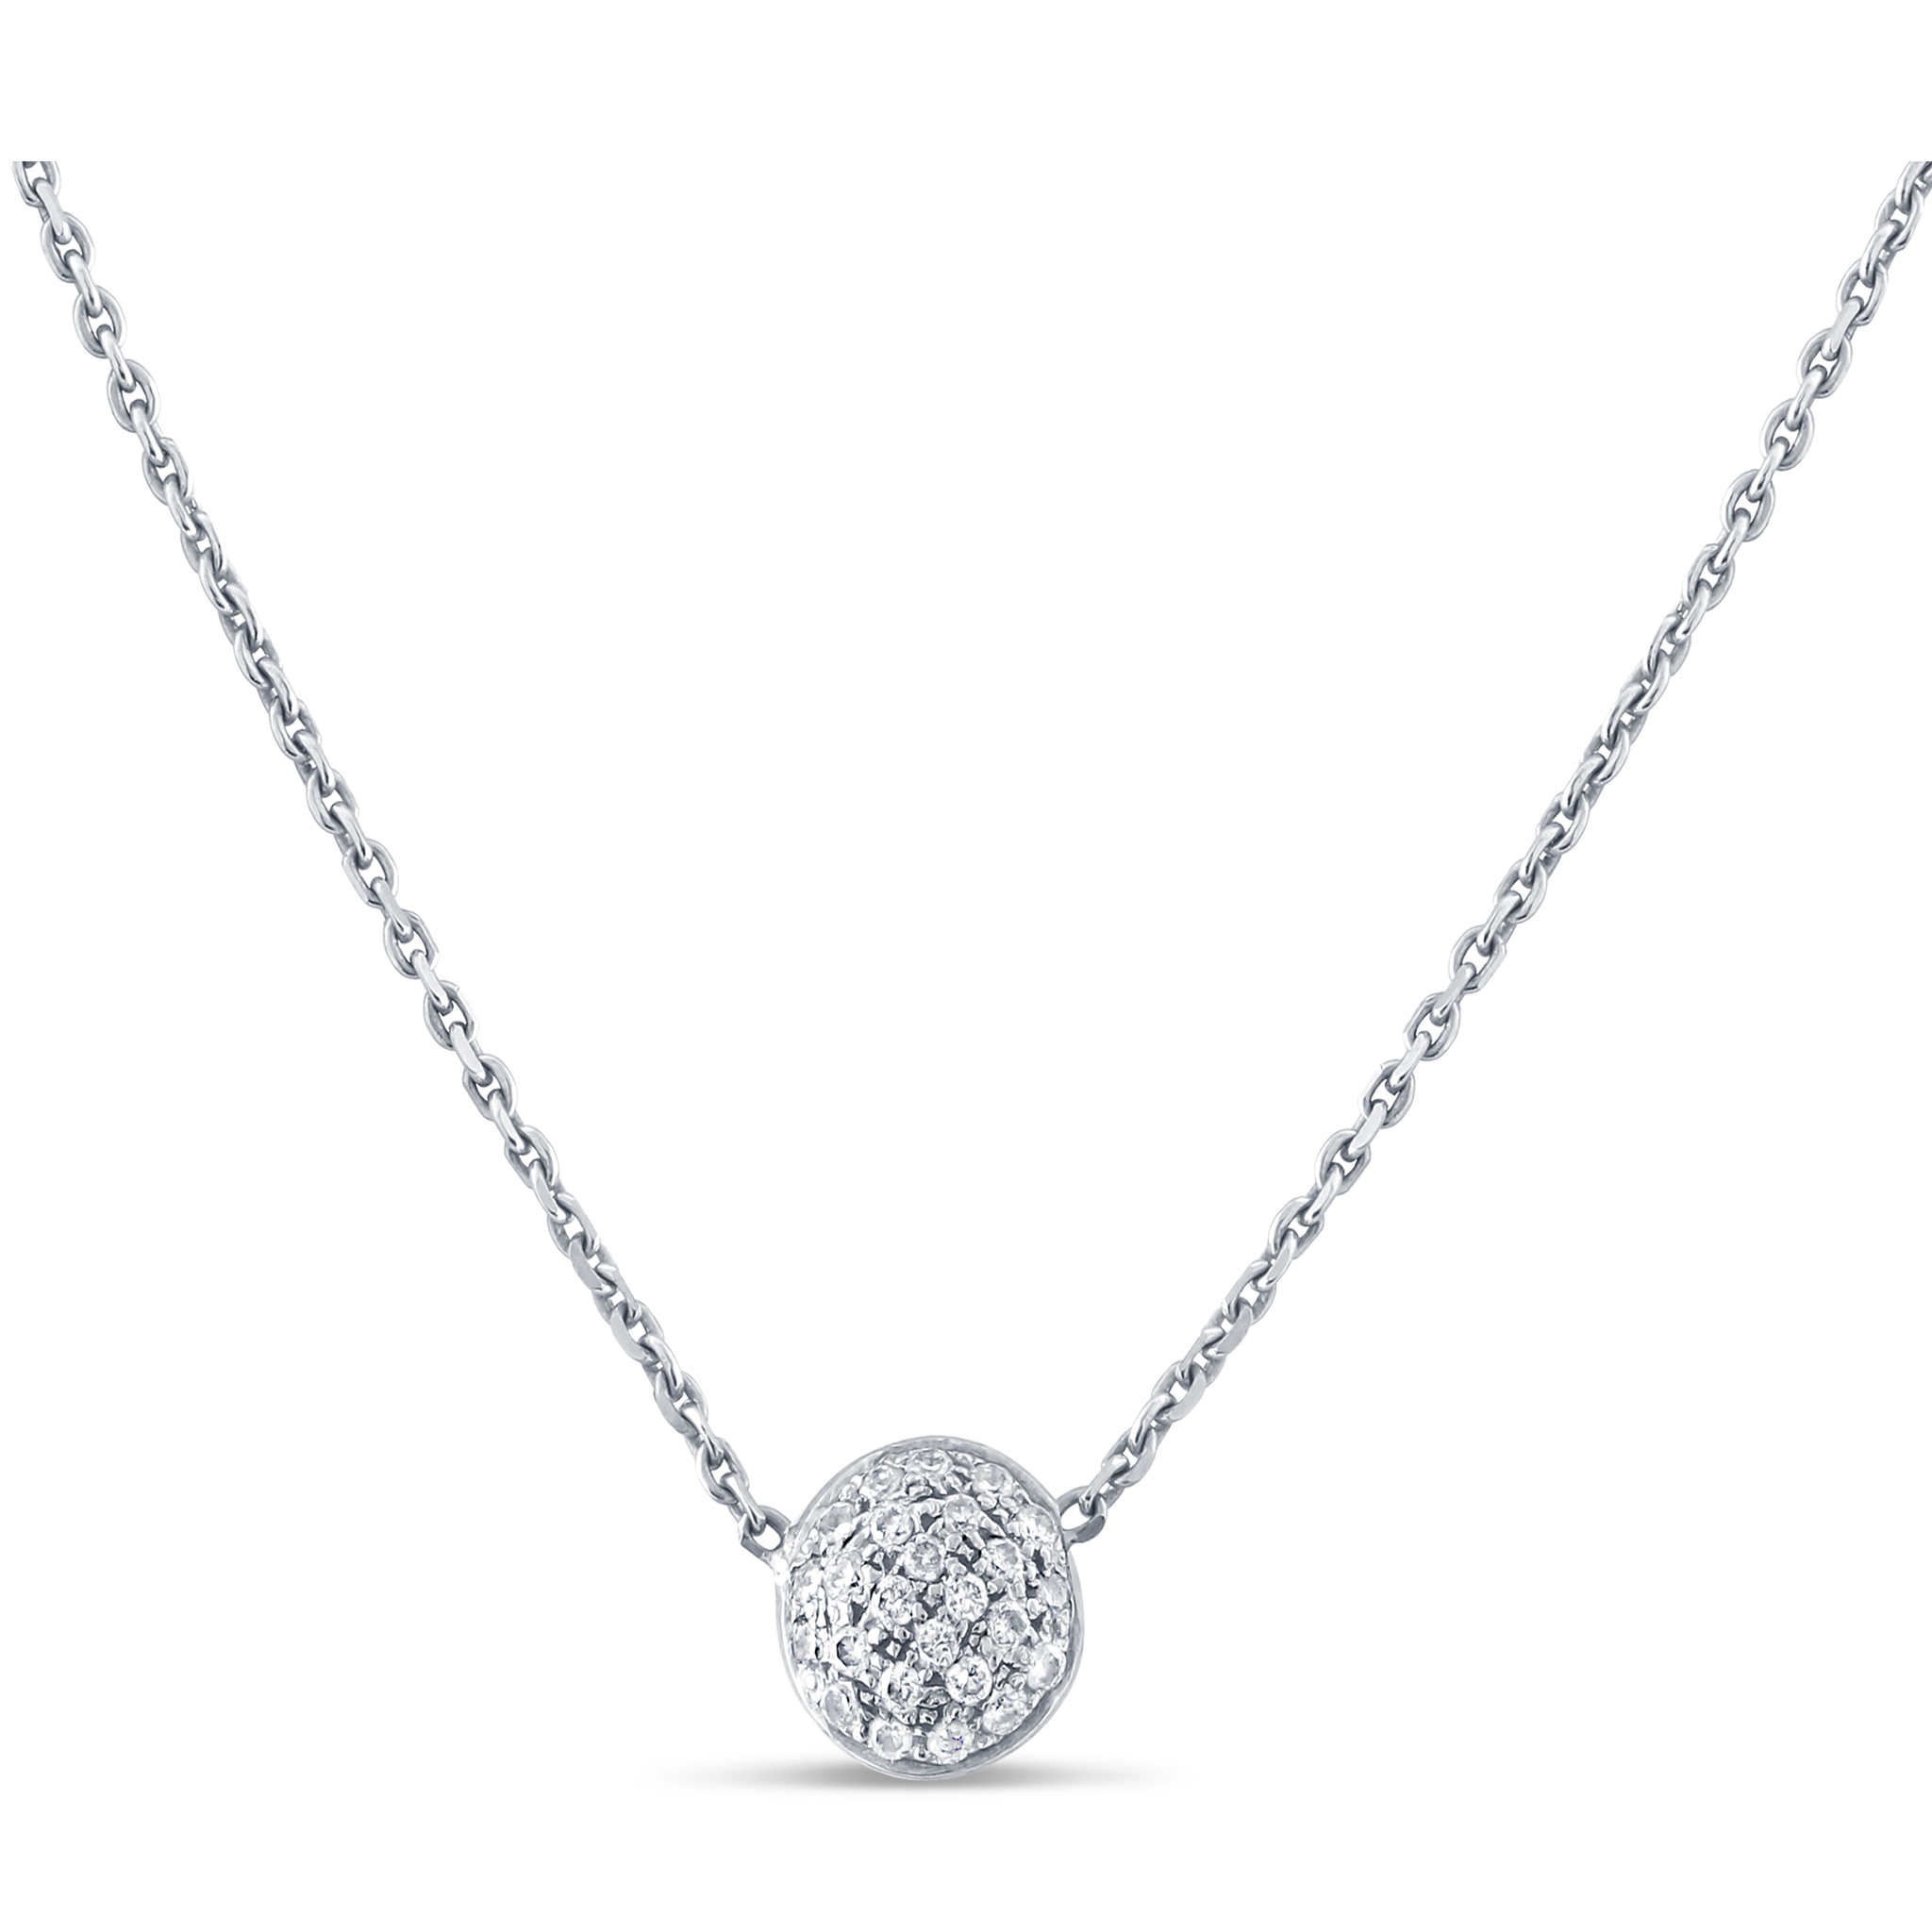 18K White Gold Lente Necklace With Diamond